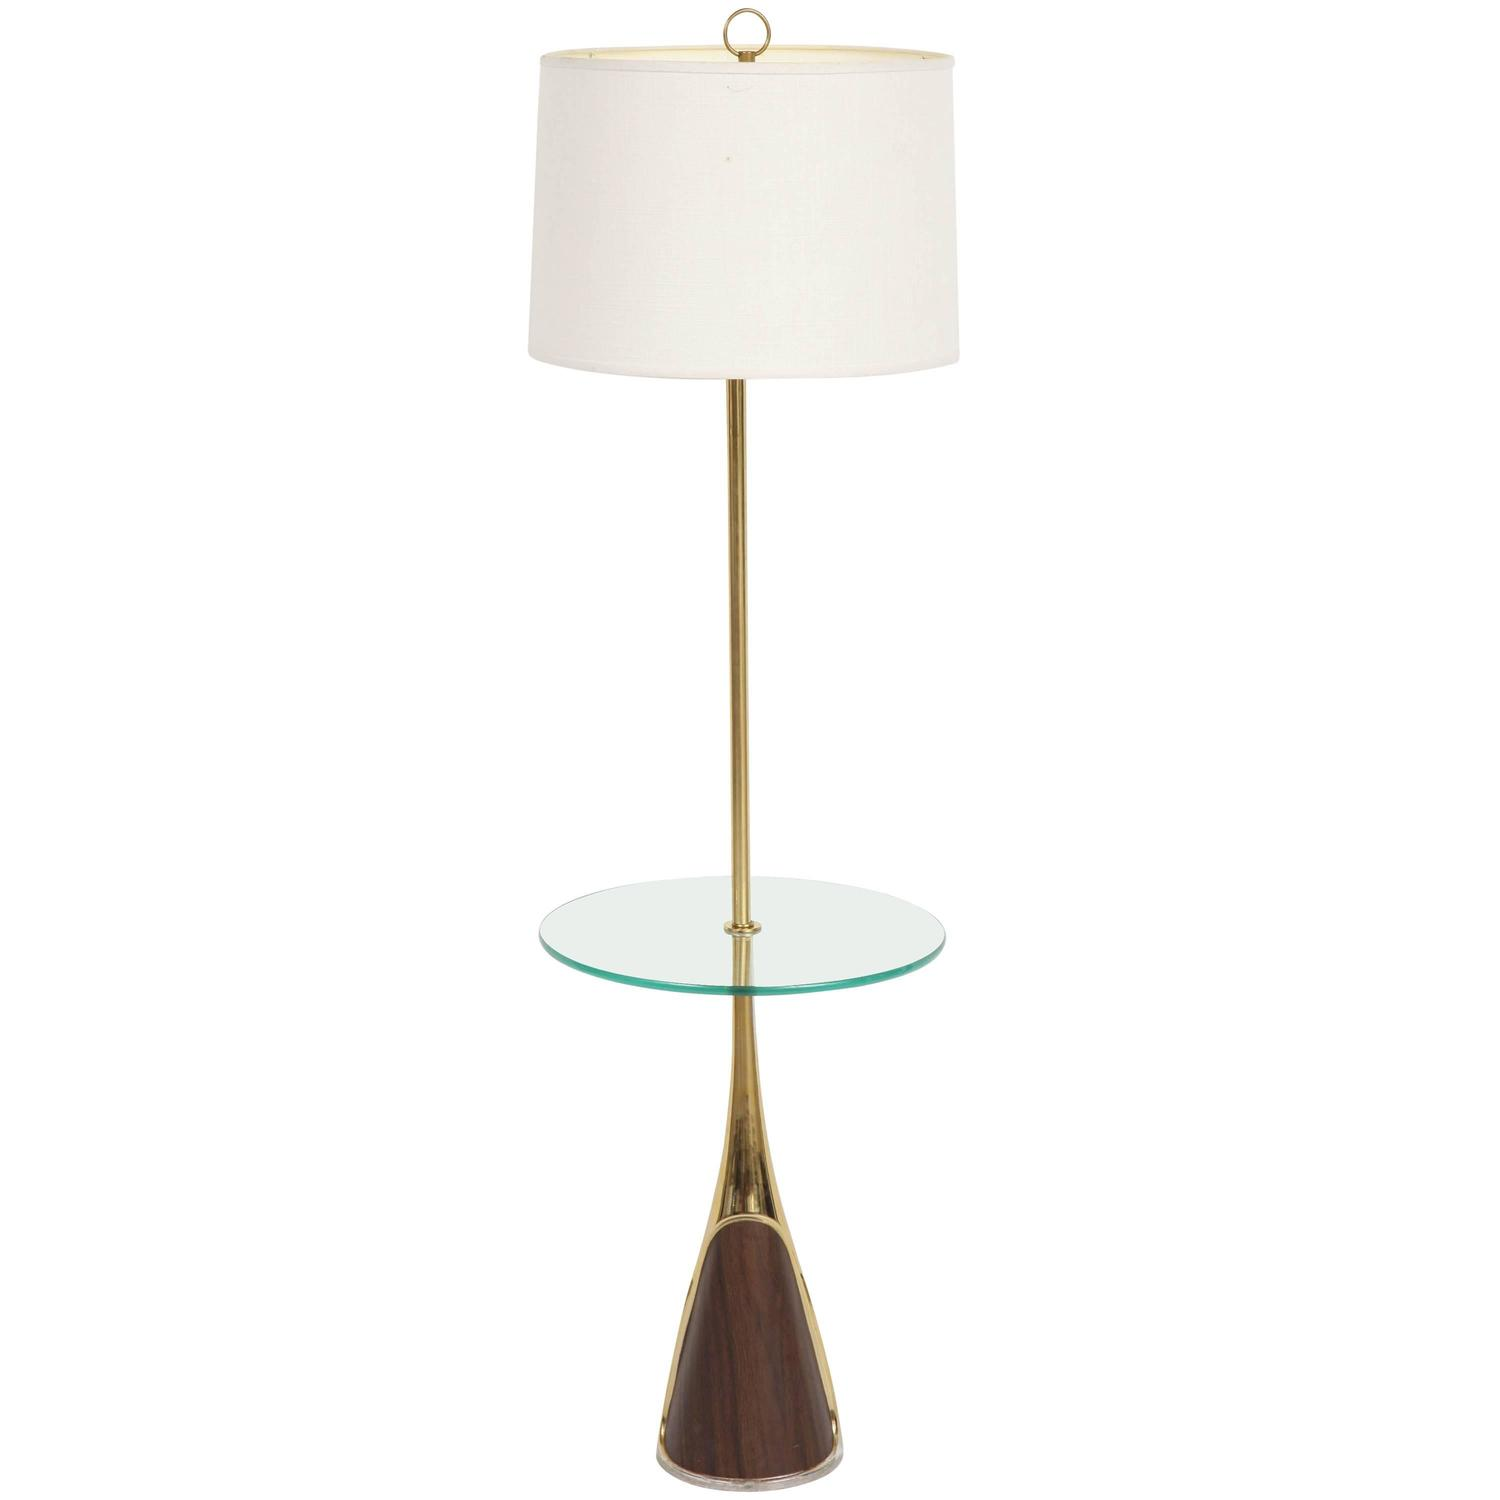 Laurel floor lamp with table shelf for sale at 1stdibs for Floor lamp with shelves